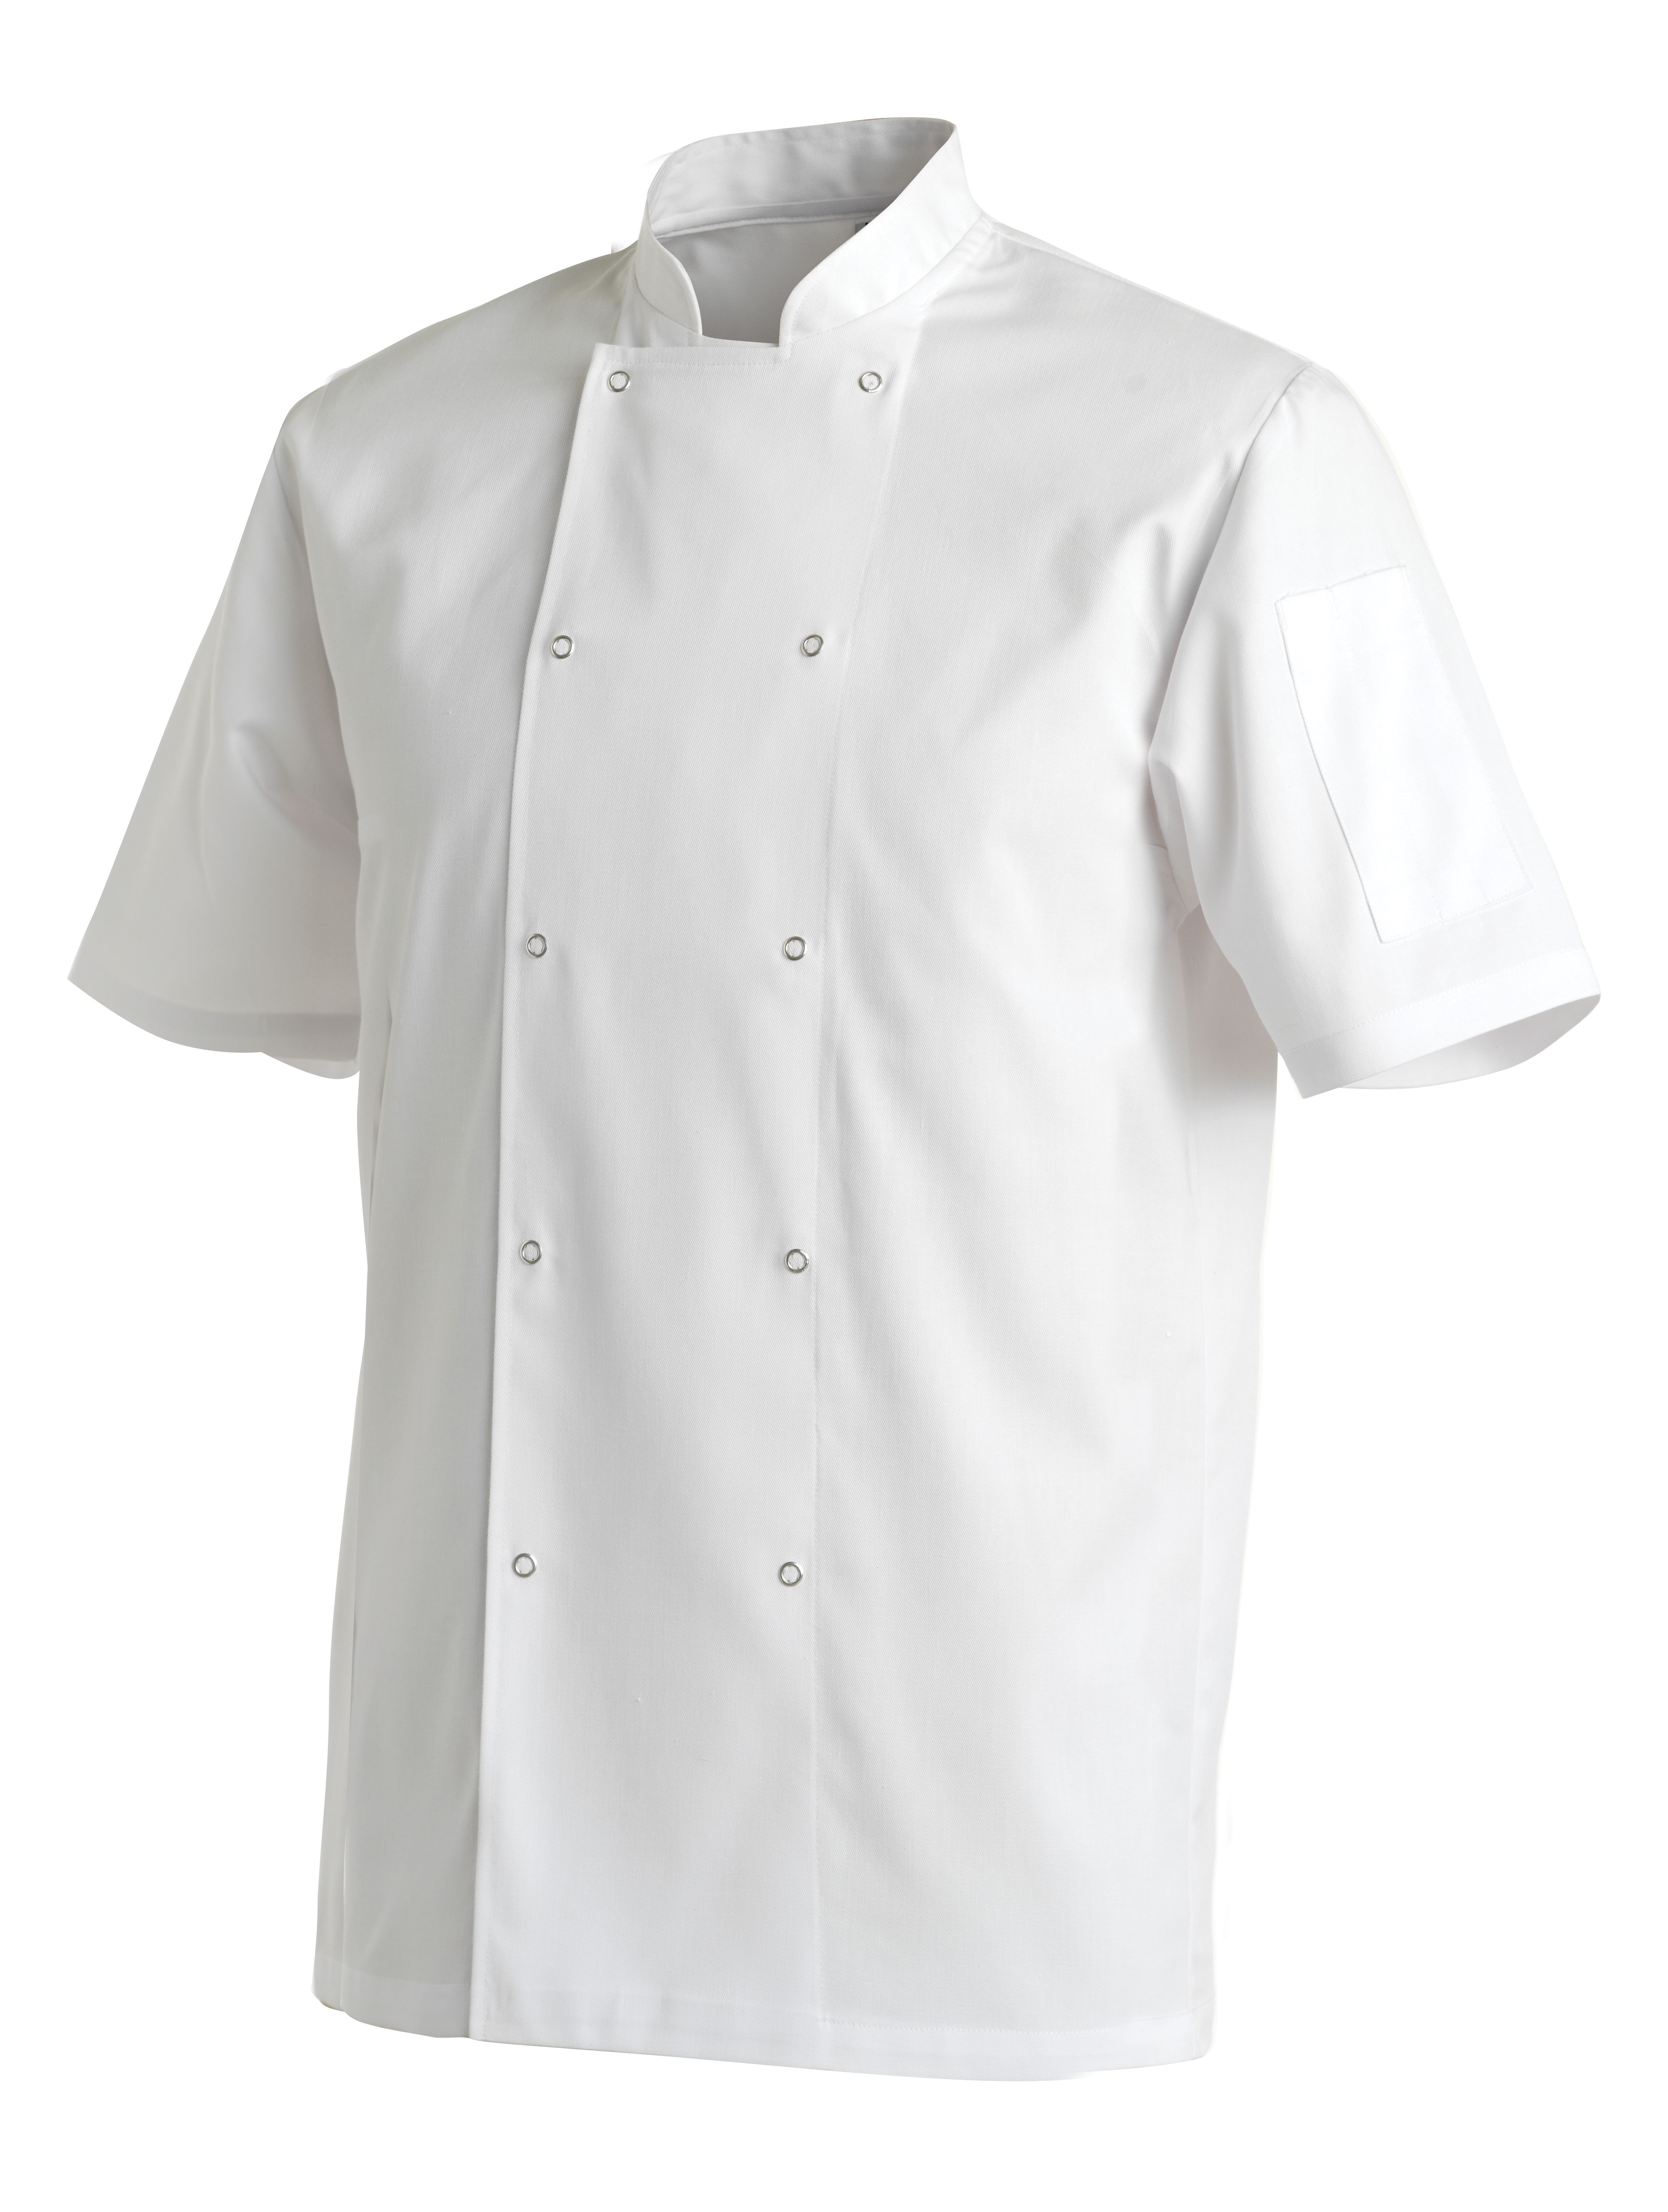 CHEFS UNIFORM JACKET LAUNDRY COAT SHORT - XXX LARGE